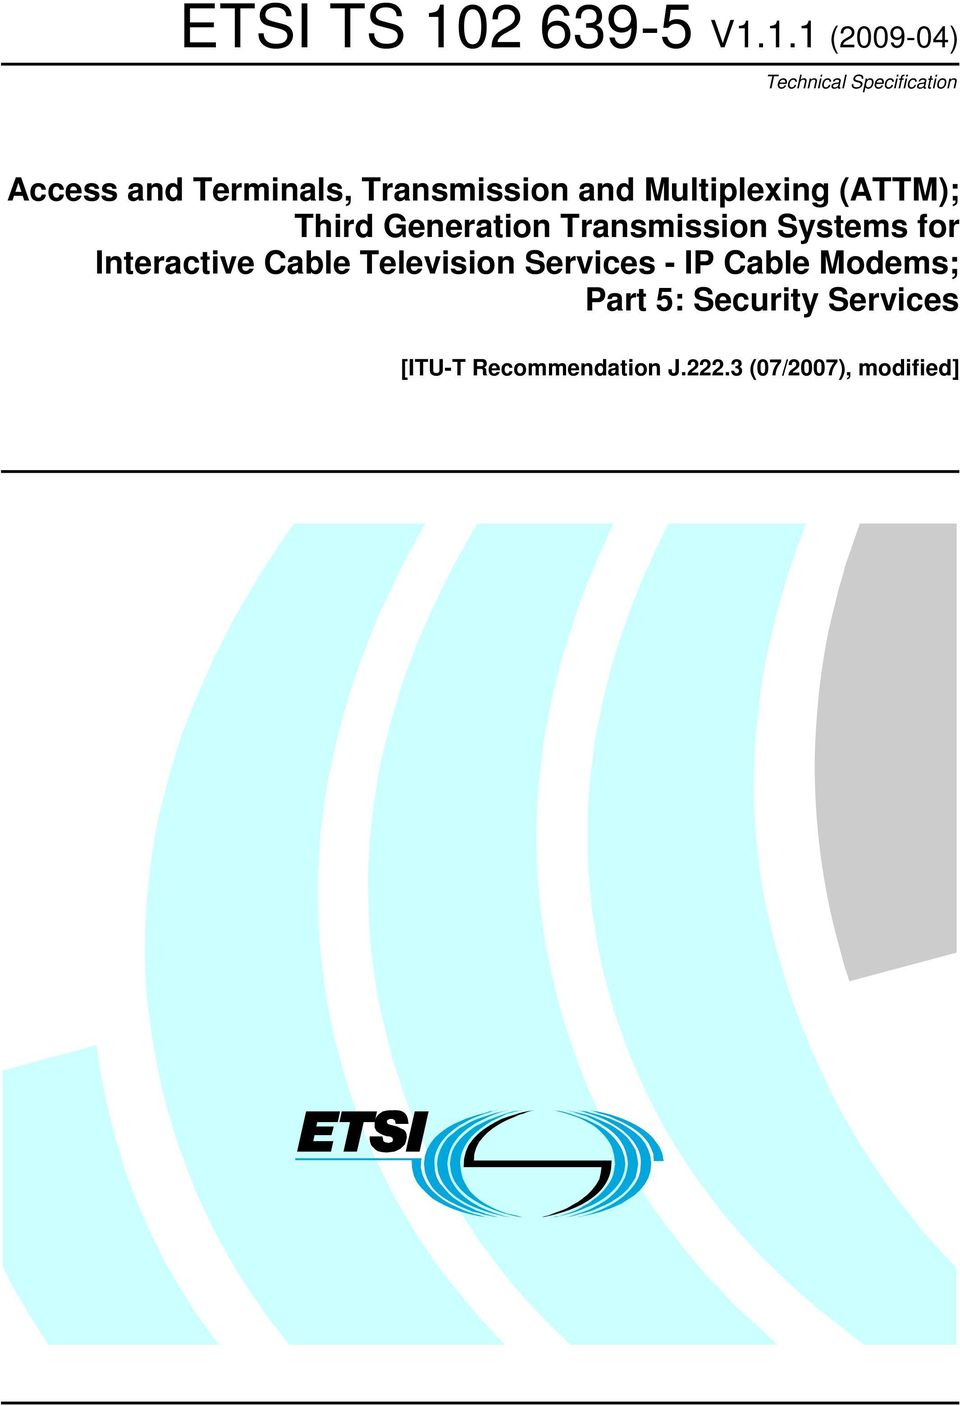 Transmission Systems for Interactive Cable Television Services - IP